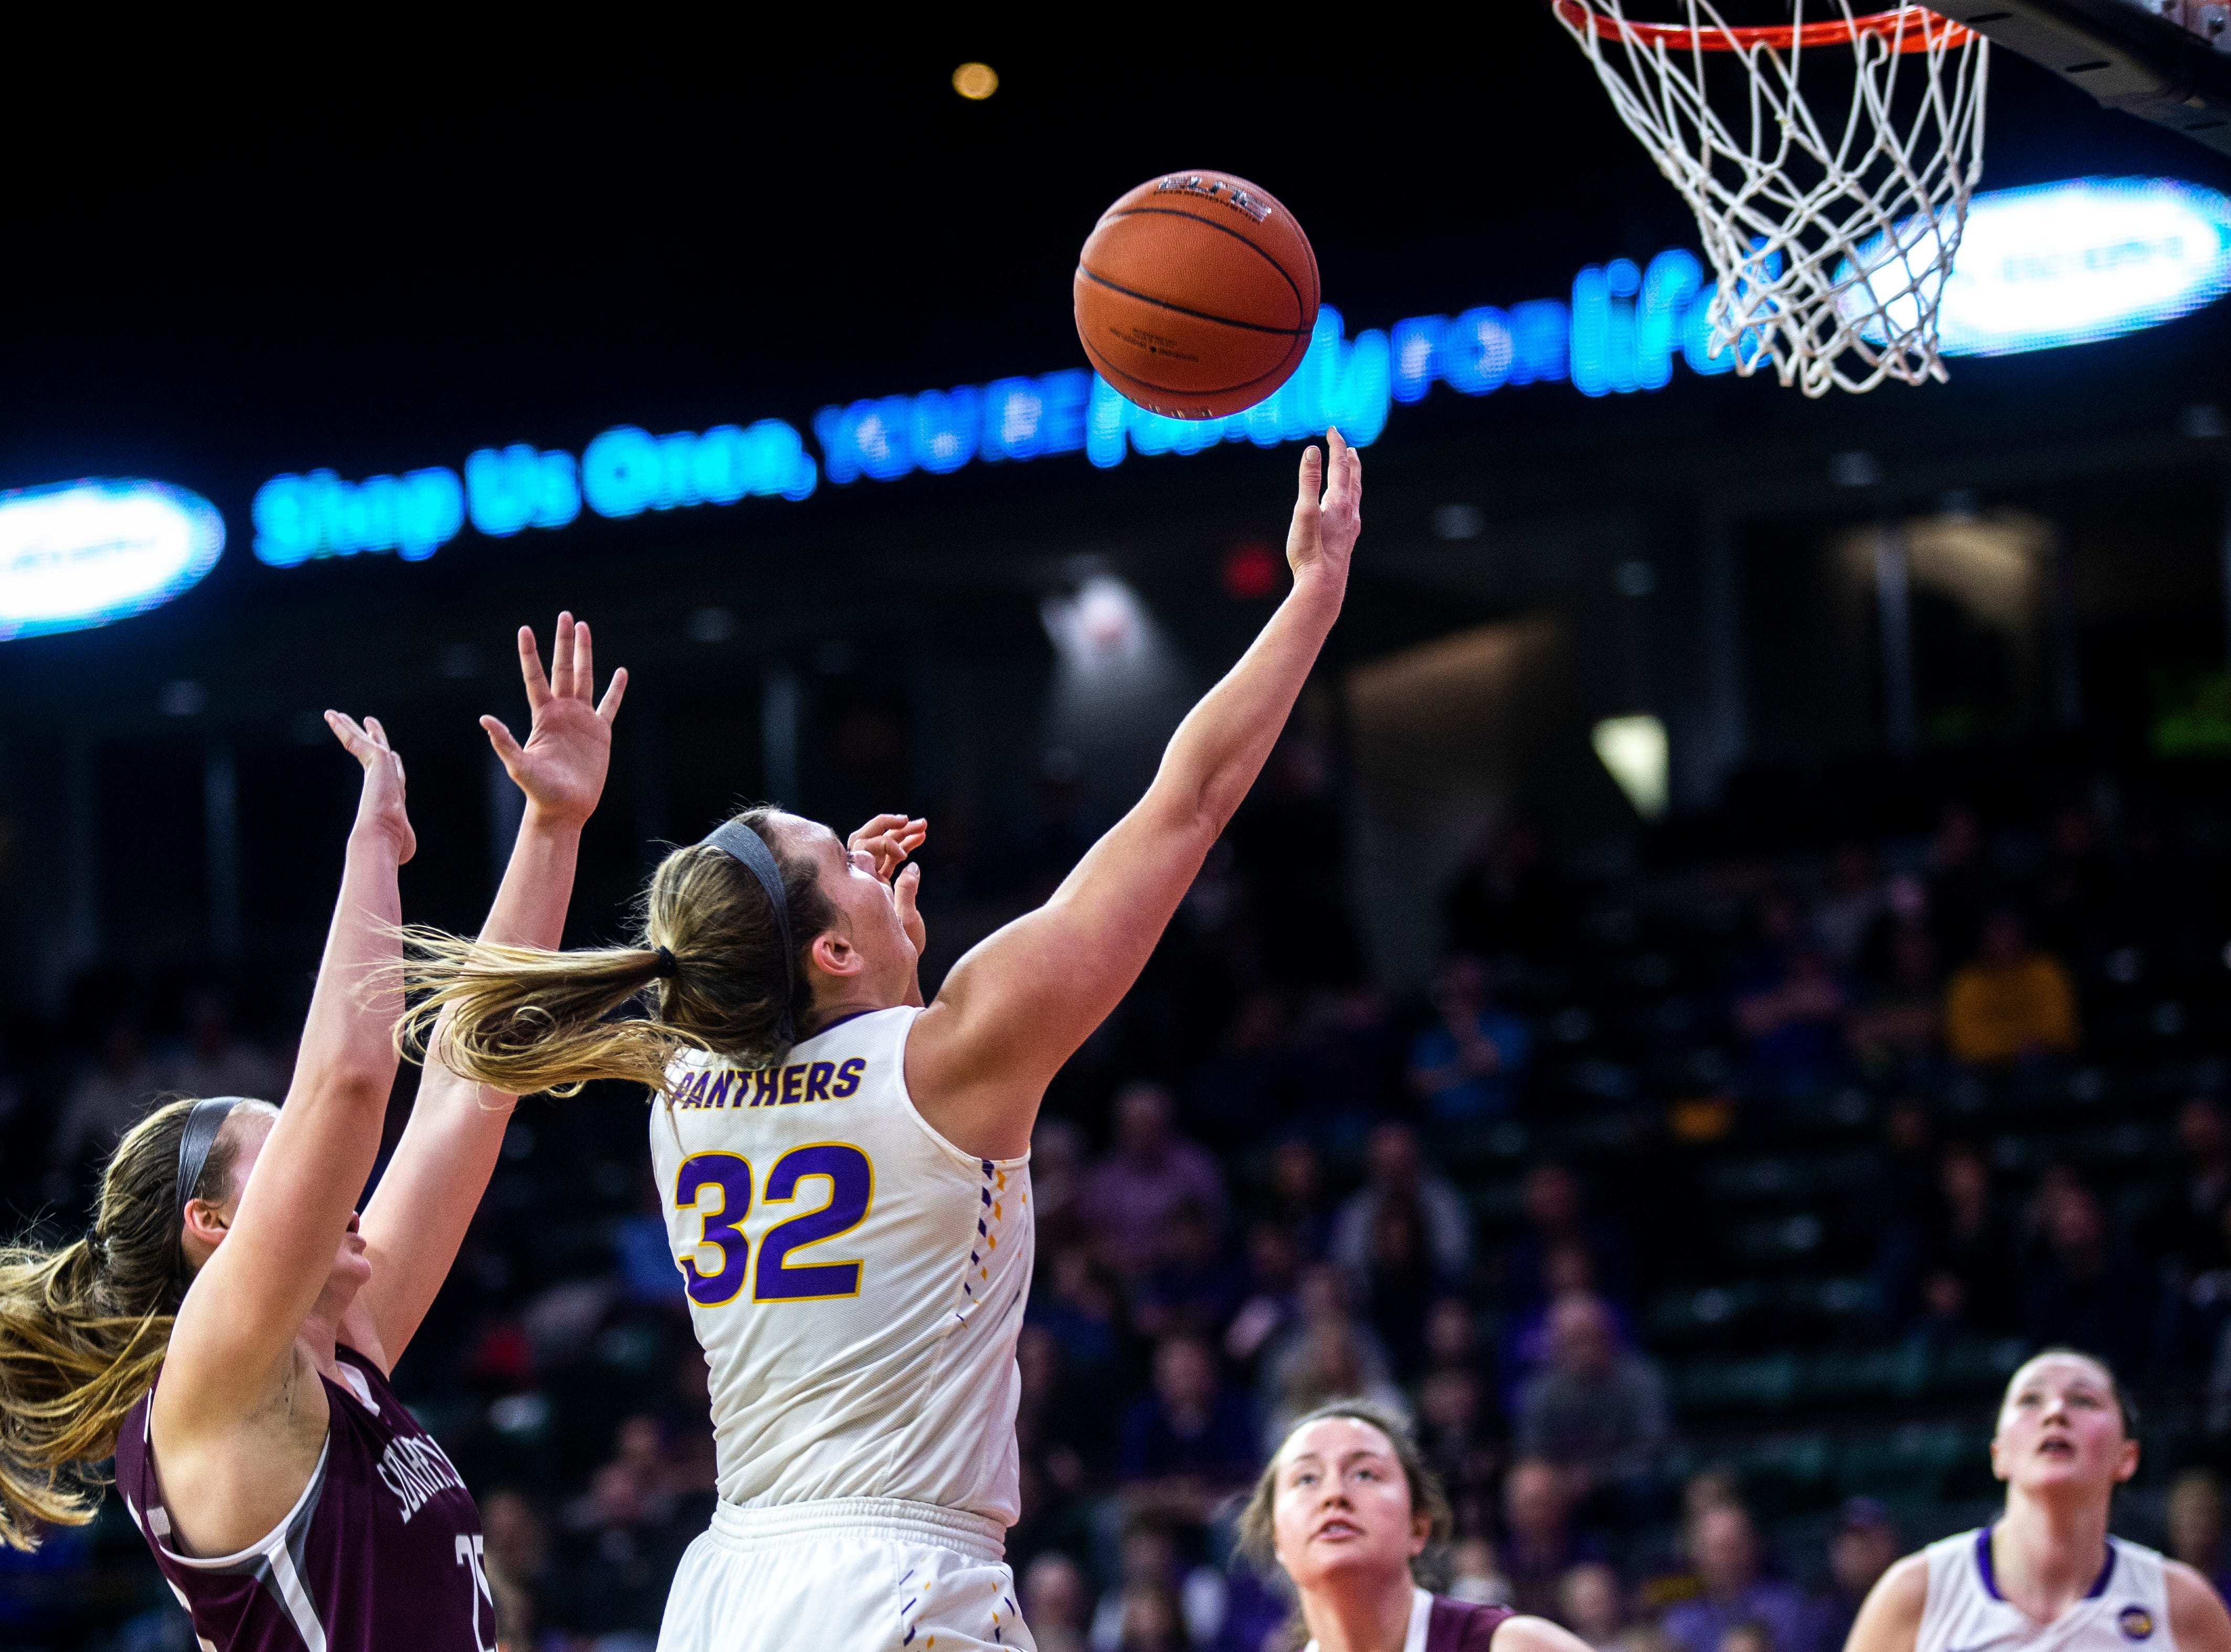 Northern Iowa forward Heidi Hillyard (32) drives to the basket during a NCAA Missouri Valley Conference women's basketball quarterfinal tournament game, Friday, March 15, 2019, at the TaxSlayer Center in Moline, Illinois.